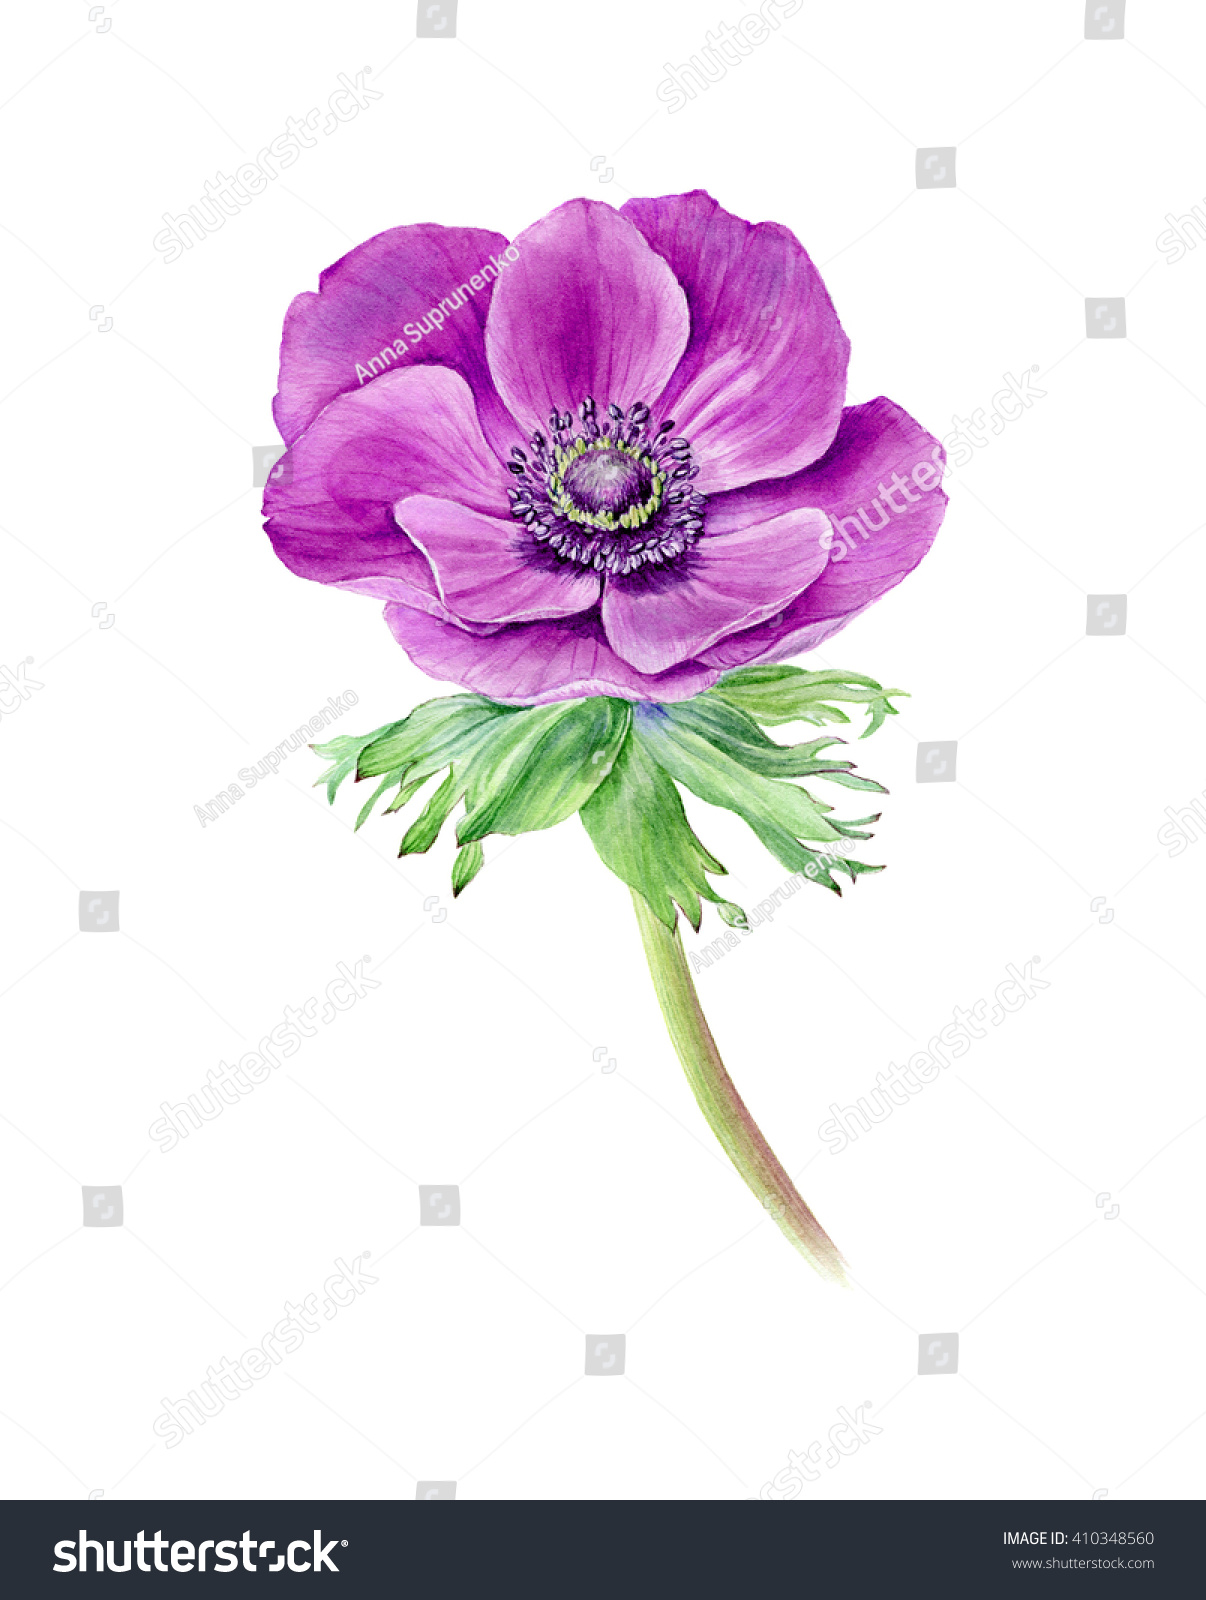 Hand Drawn Watercolor Pink Anemone Flower Stock Illustration